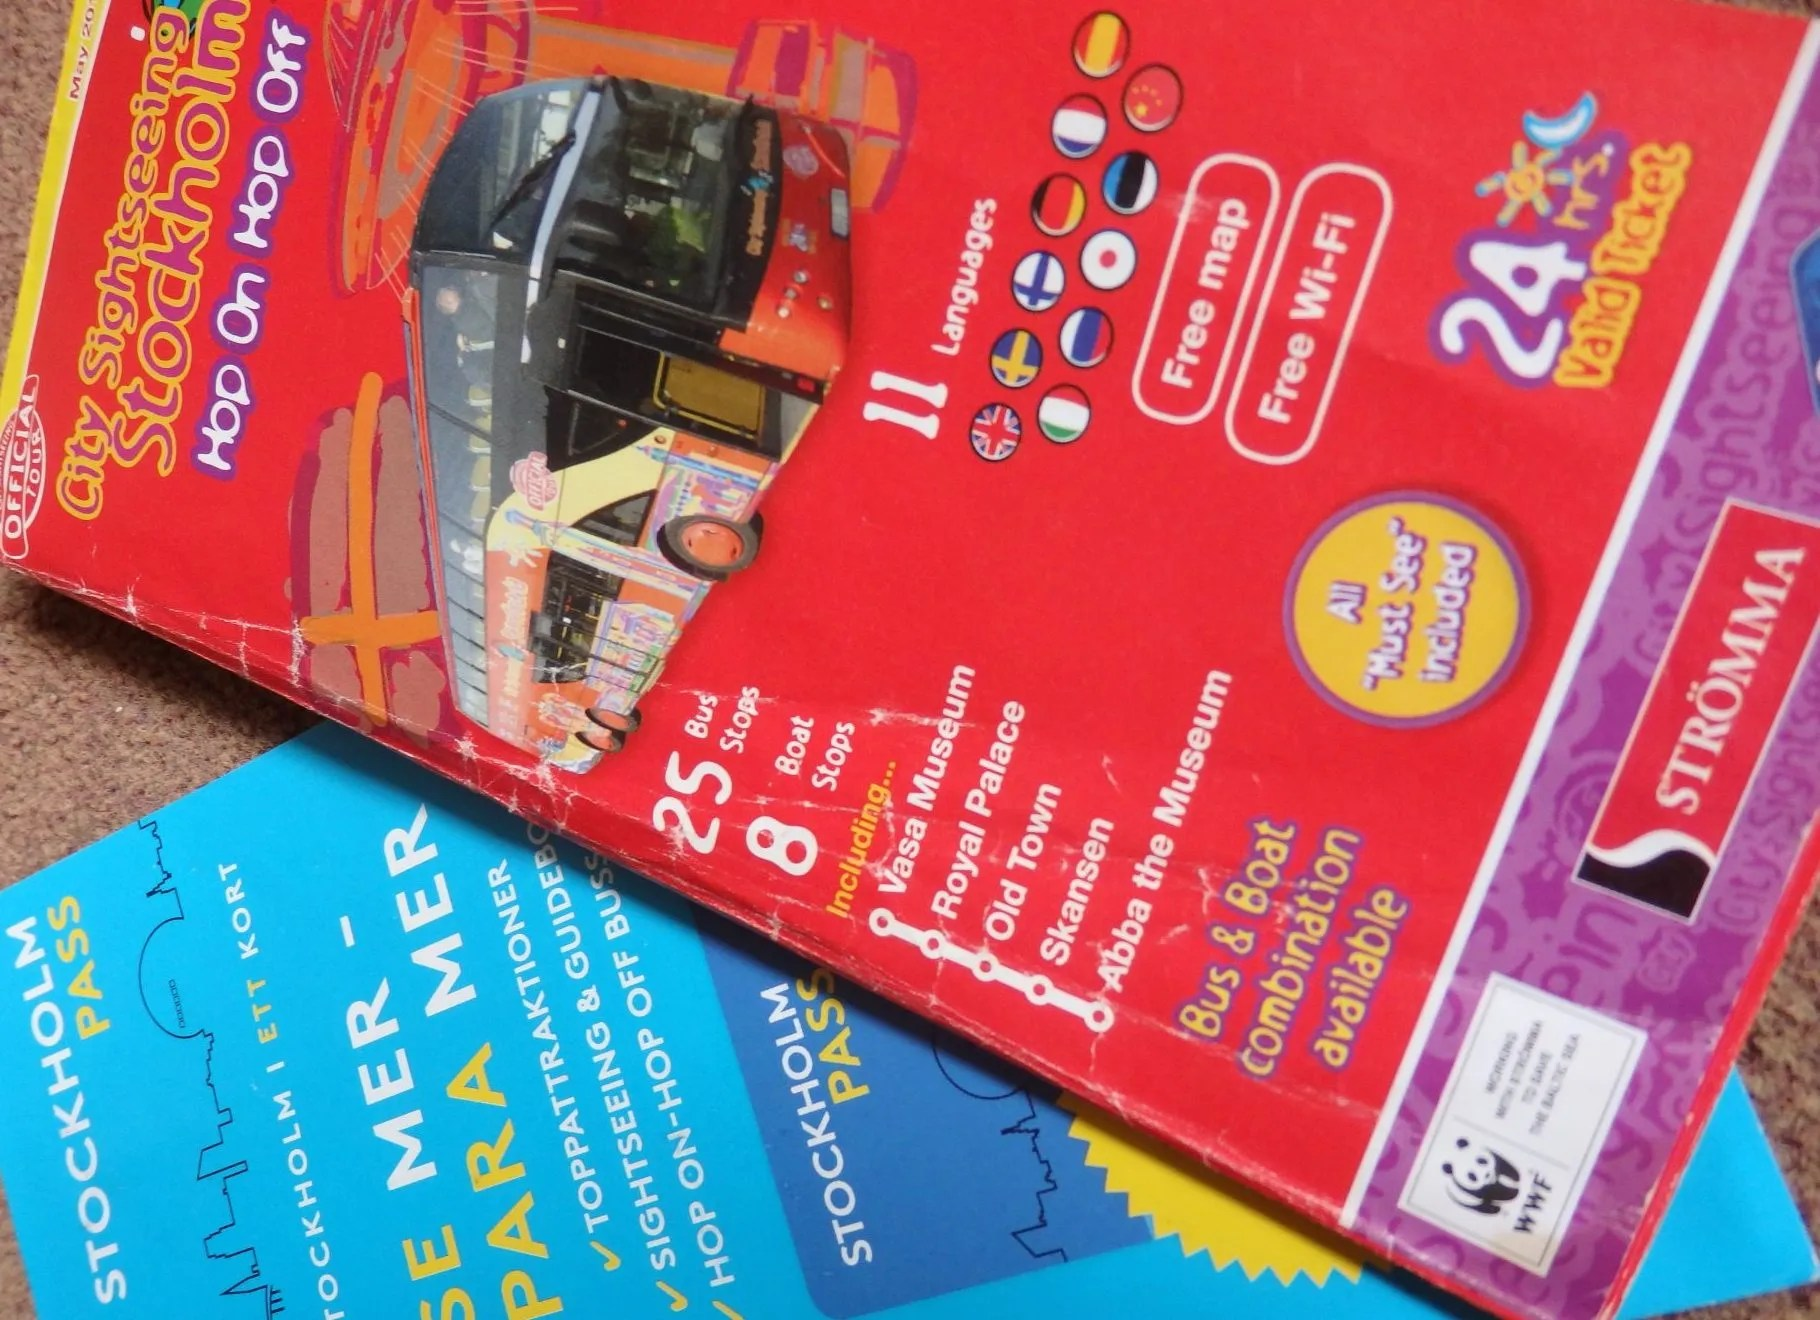 leaflets from the Hop On Hop Off and the Stockholm Pass